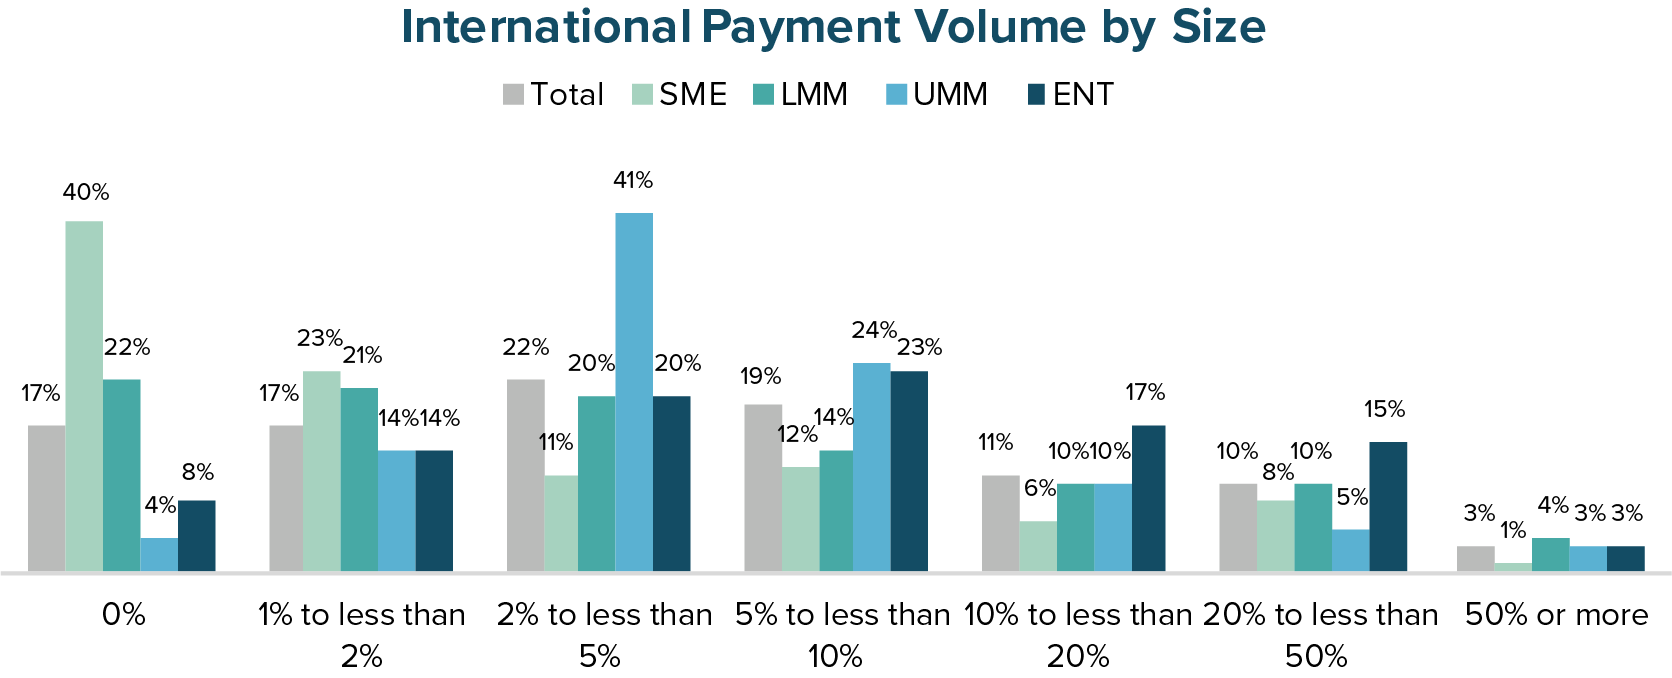 International Payment Volume by Size